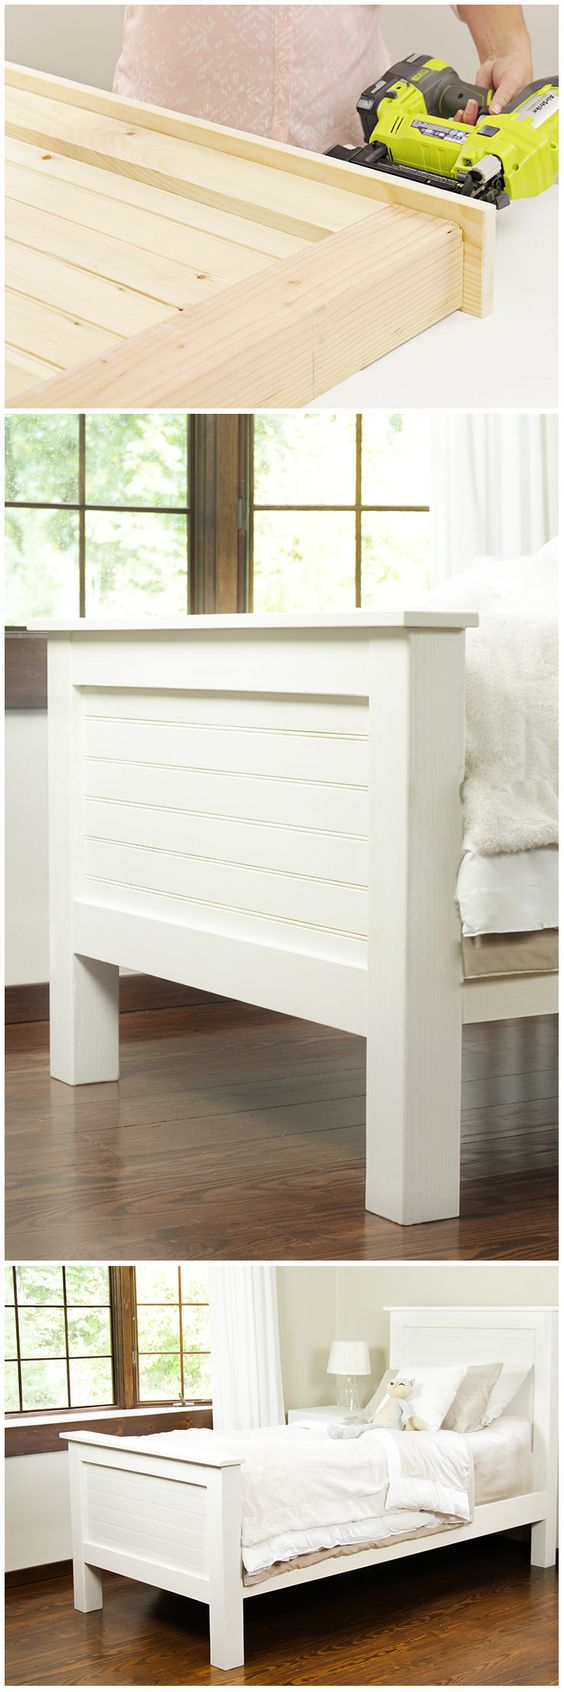 Diy Bed Frame Made From Tongue And Groove Planks Tongue And Groove Patterns And Headboard Ideas